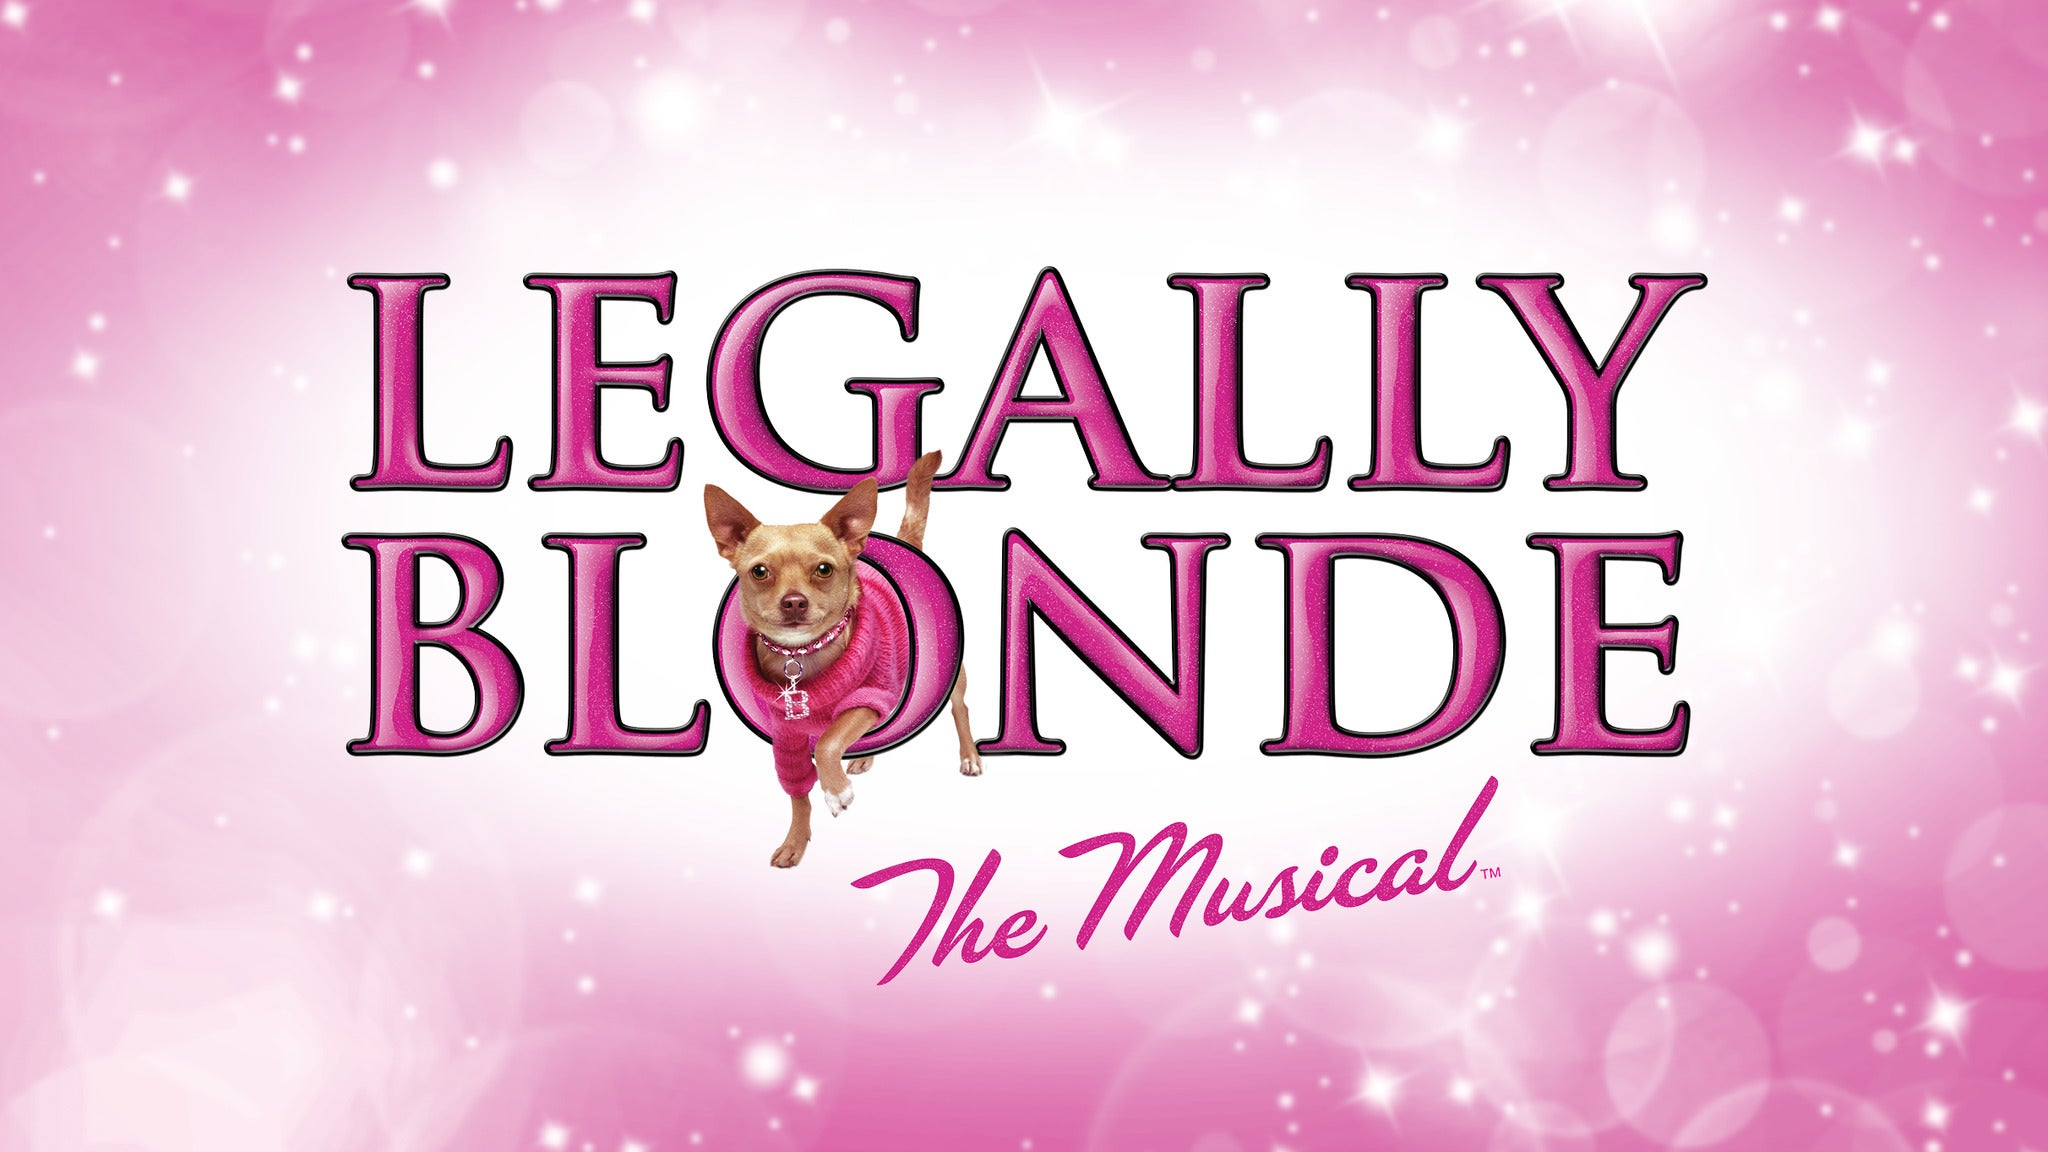 Legally Blonde at Palace Theatre Waterbury-CT